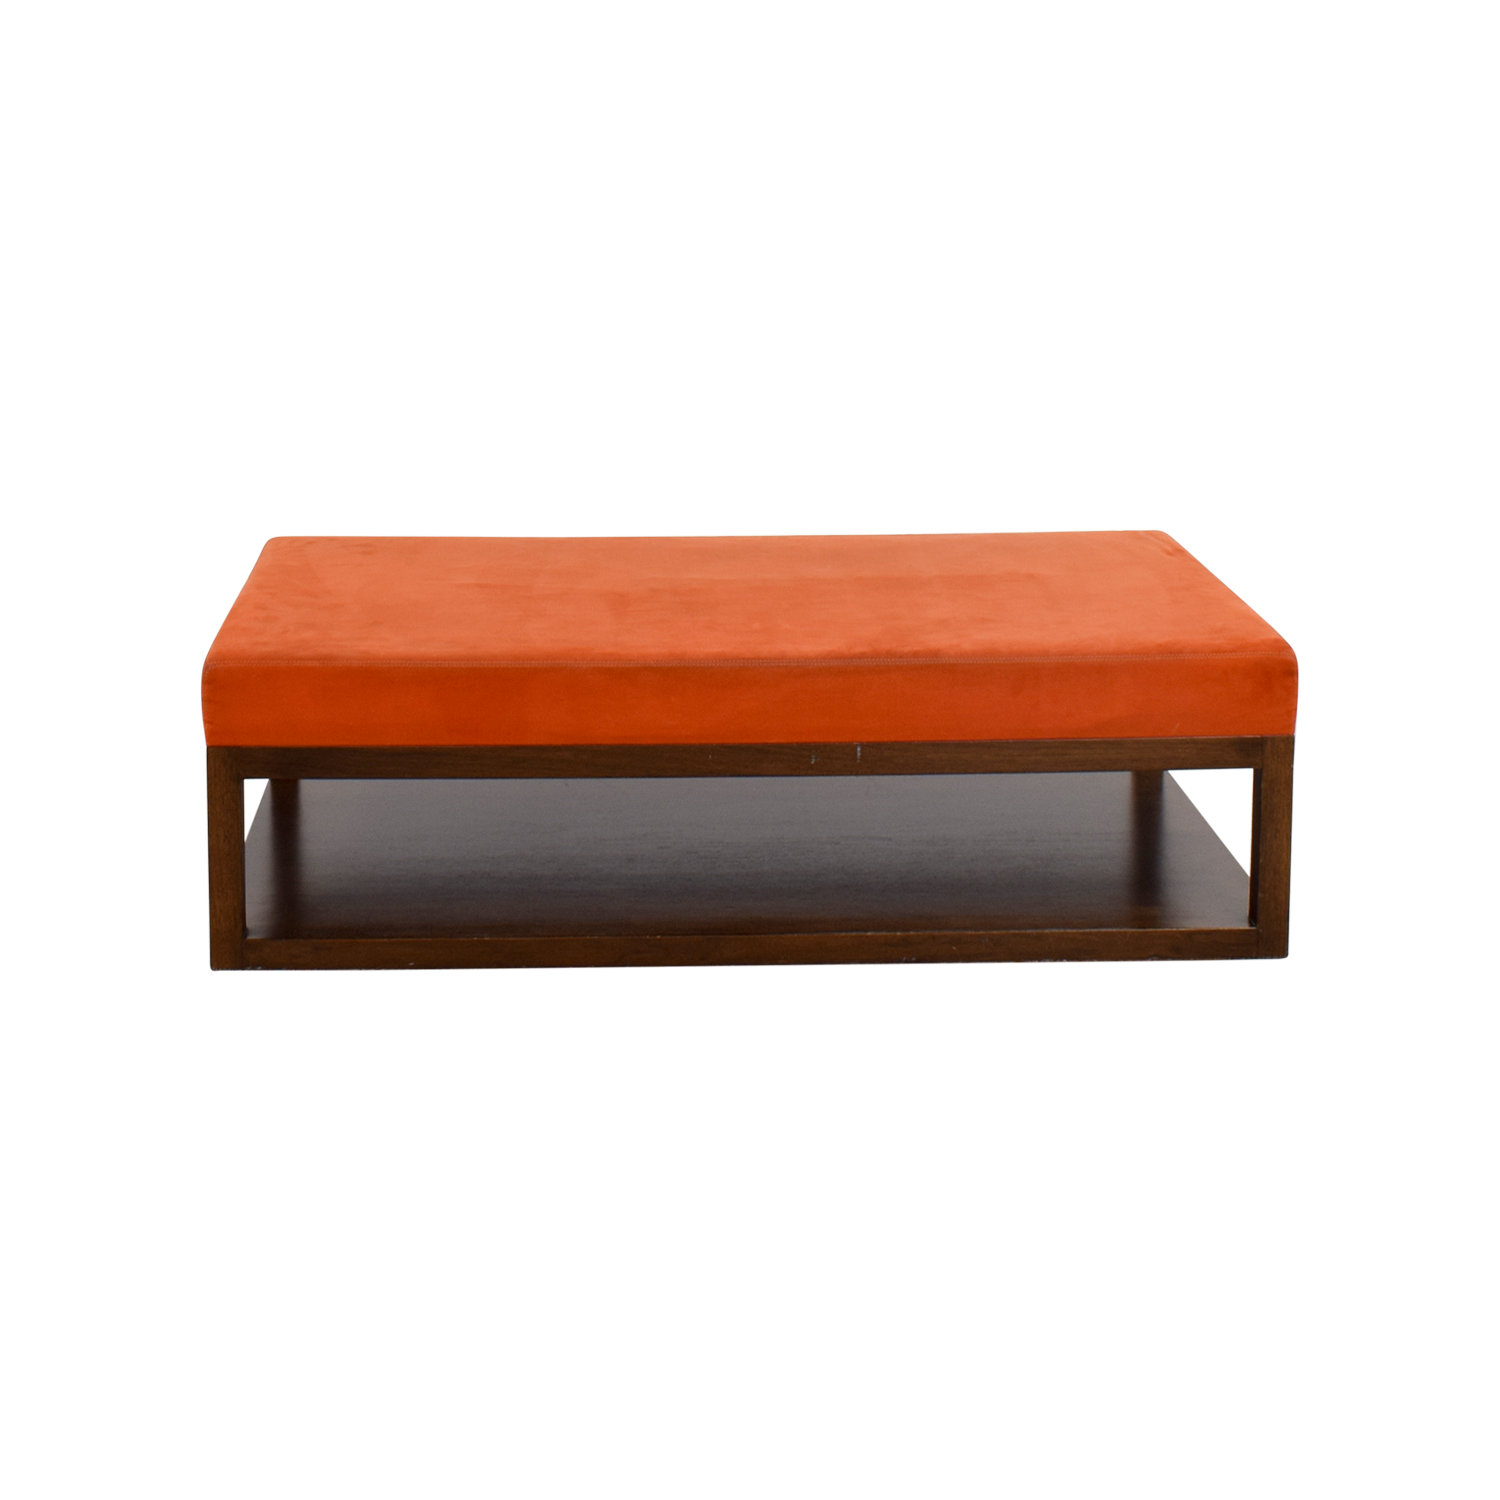 buy Custom made Custom Orange Ottoman with Wood Base on Casters online